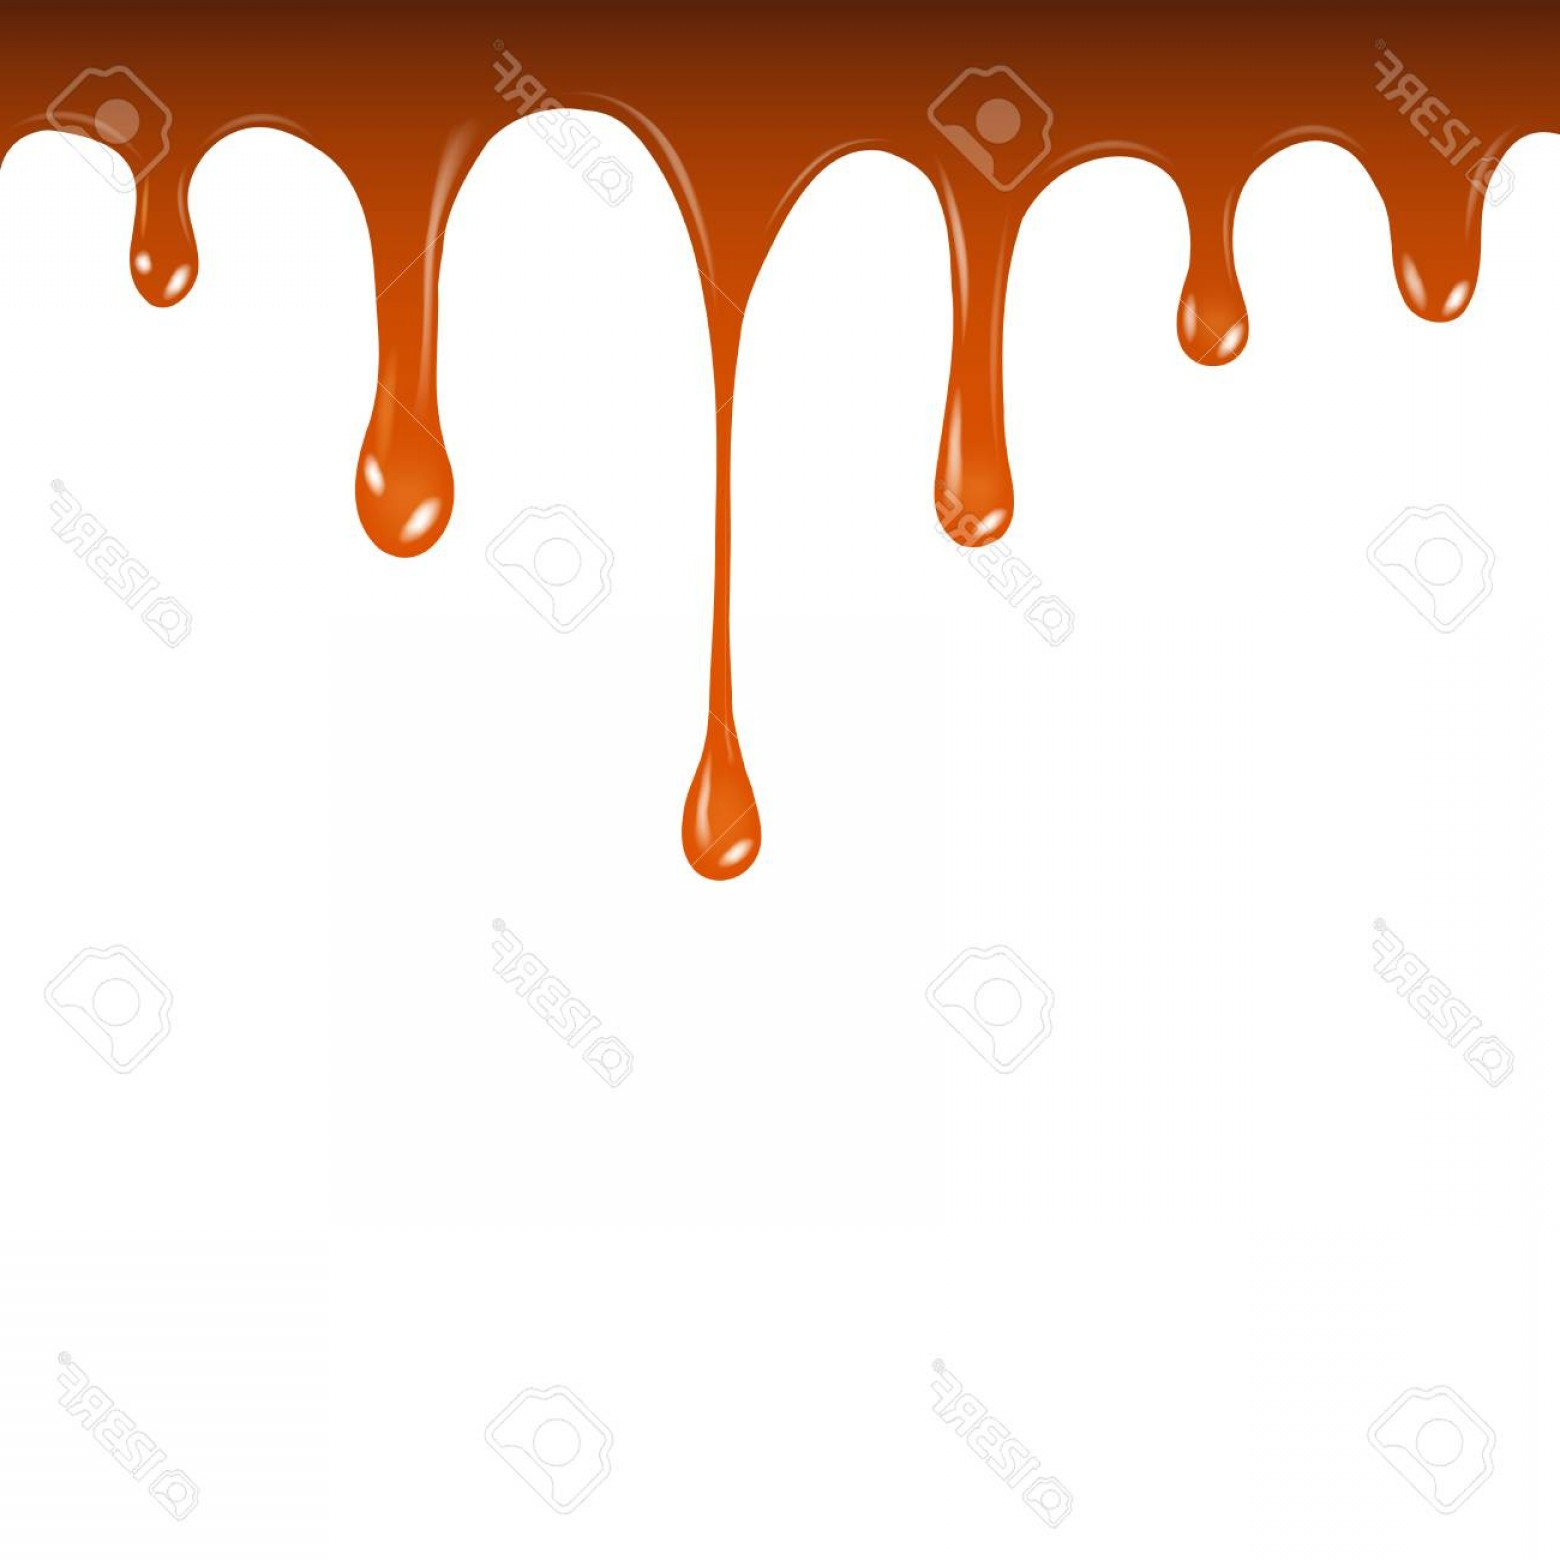 Caramel Drip Vector: Photostock Vector Vector Liquid Caramel Drip Pattern Isolated On A White Background Liquid Caramel Streams